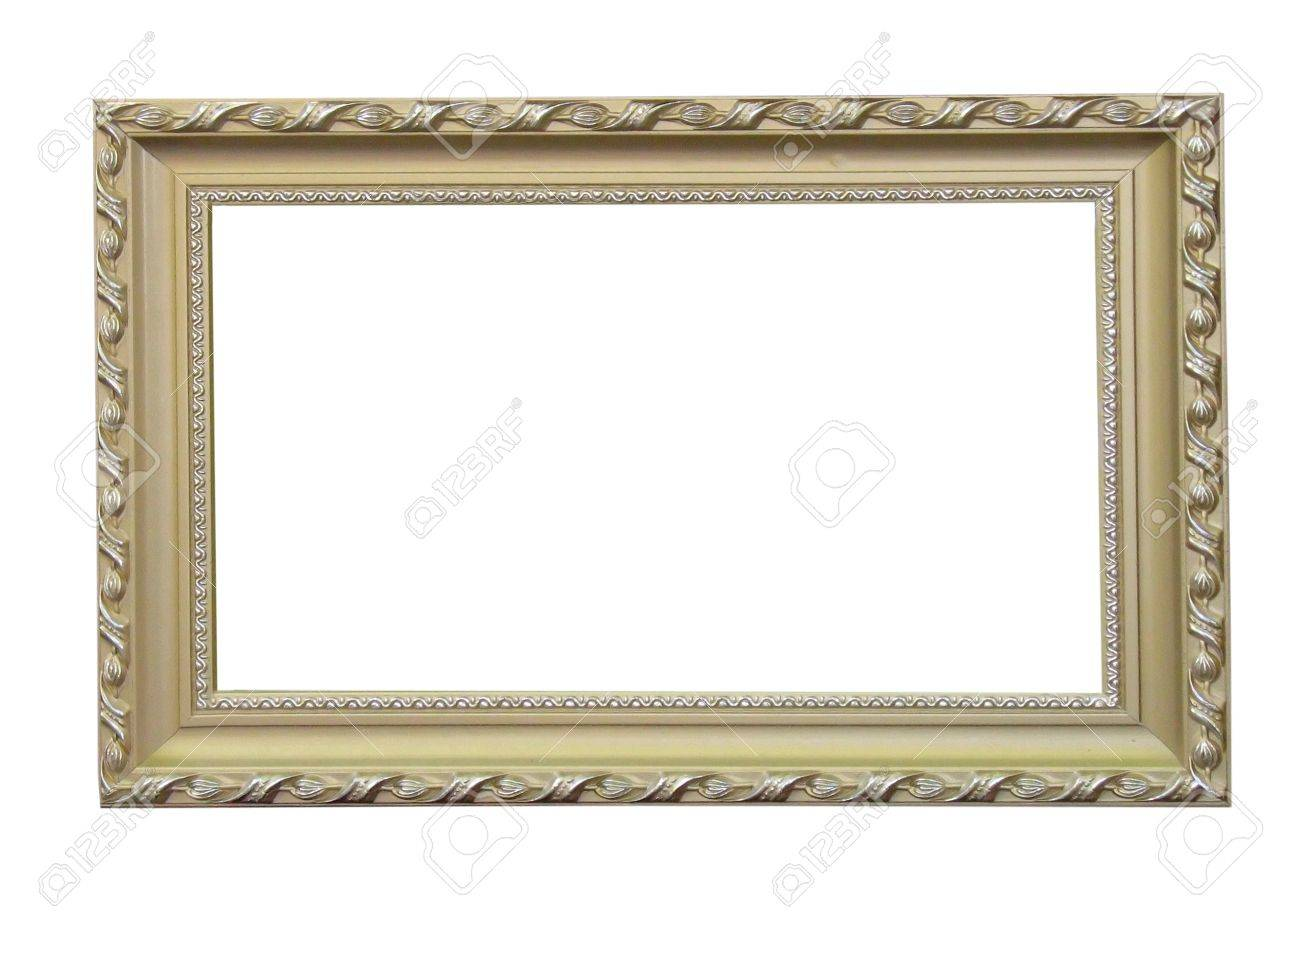 Old antique wood frame with pattern isolated over white background Stock Photo - 8289872